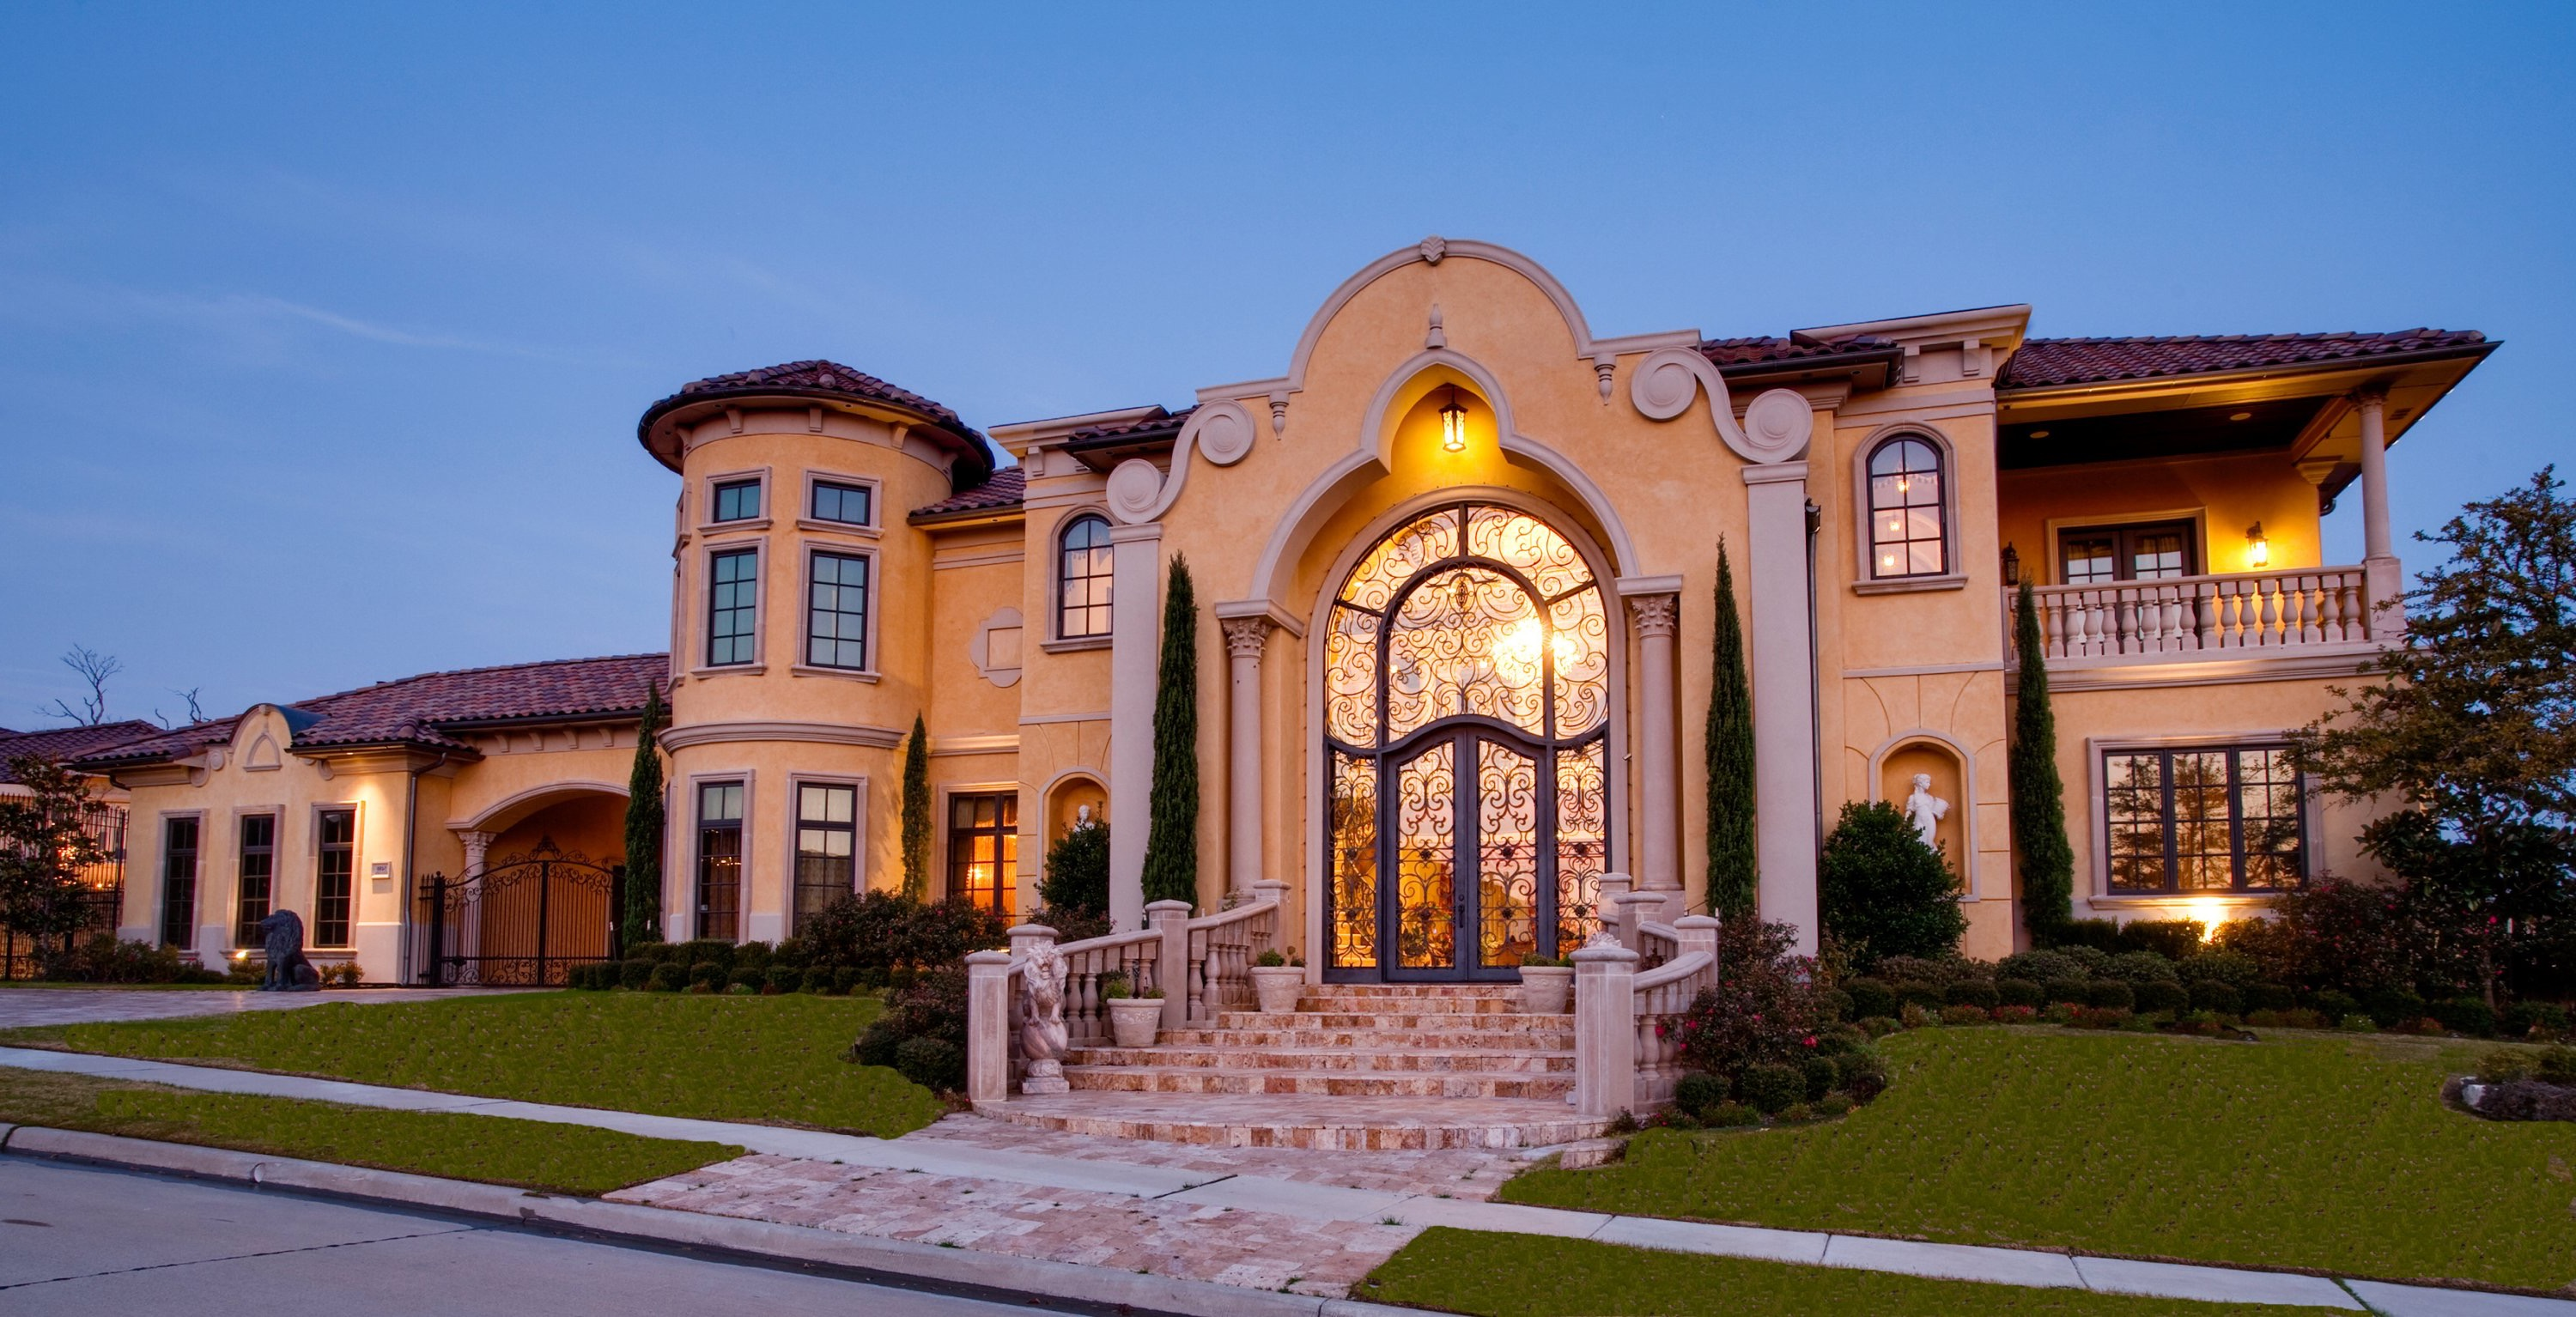 Classy Mediterranean House Exterior (View 4 of 30)